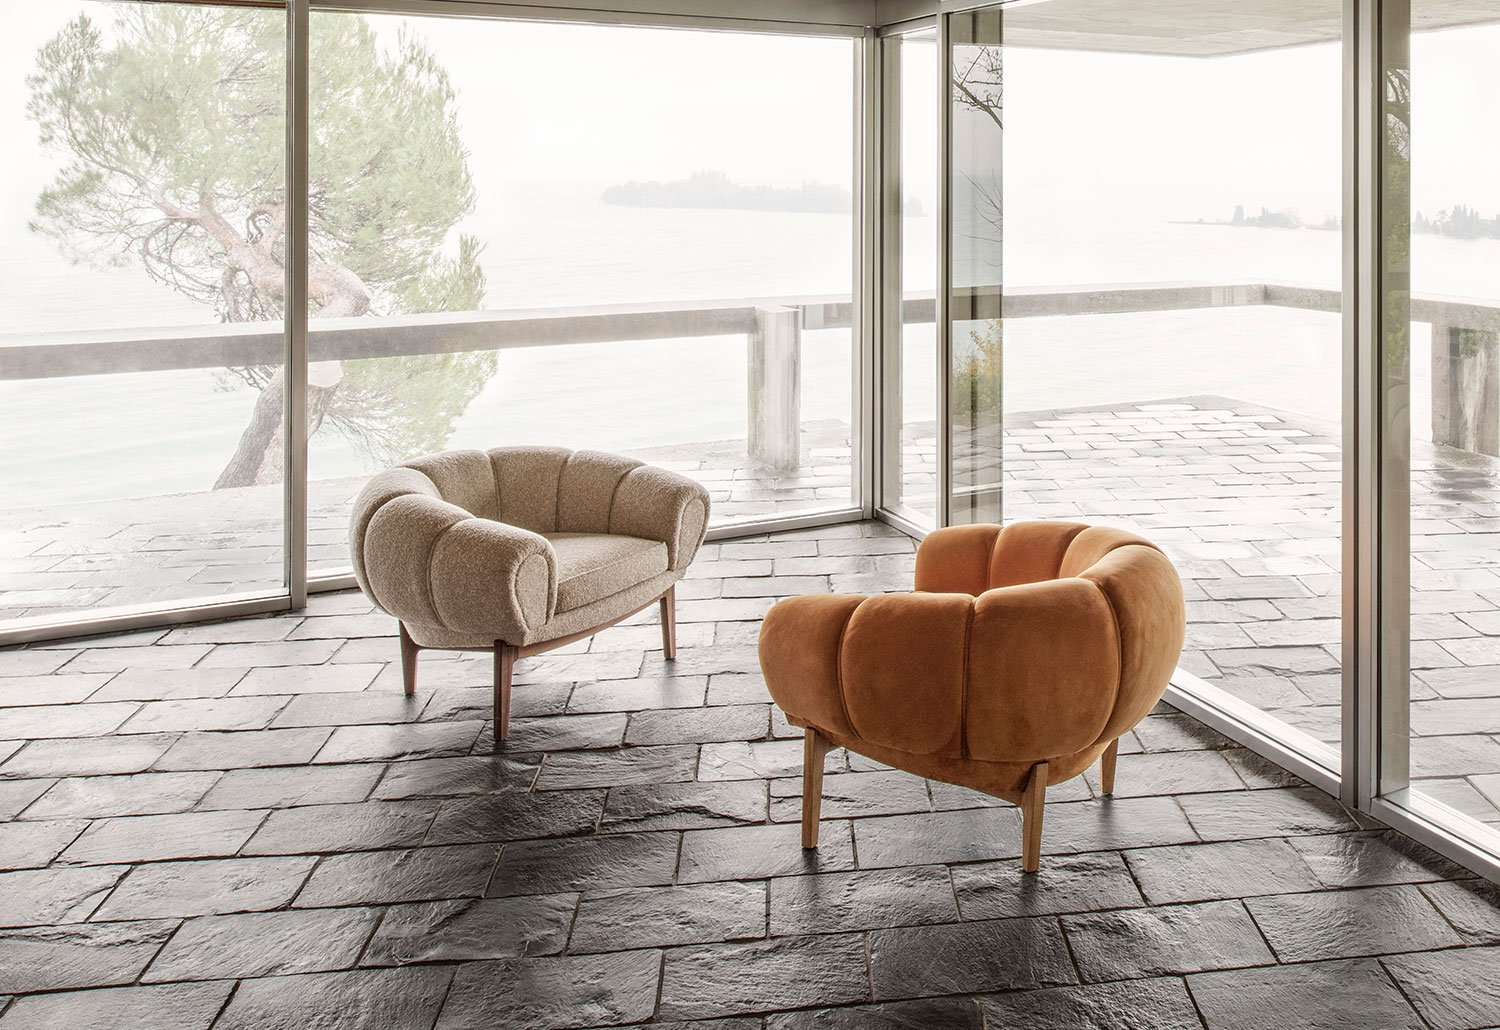 Hotel Lobbies and Waiting Spaces: A List Of 20 Modern Armchairs  modern armchairs Hotel Lobbies And Waiting Spaces: A List Of 20 Modern Armchairs Hotel Lobbies and Waiting Spaces A List Of 20 Modern Armchairs 4